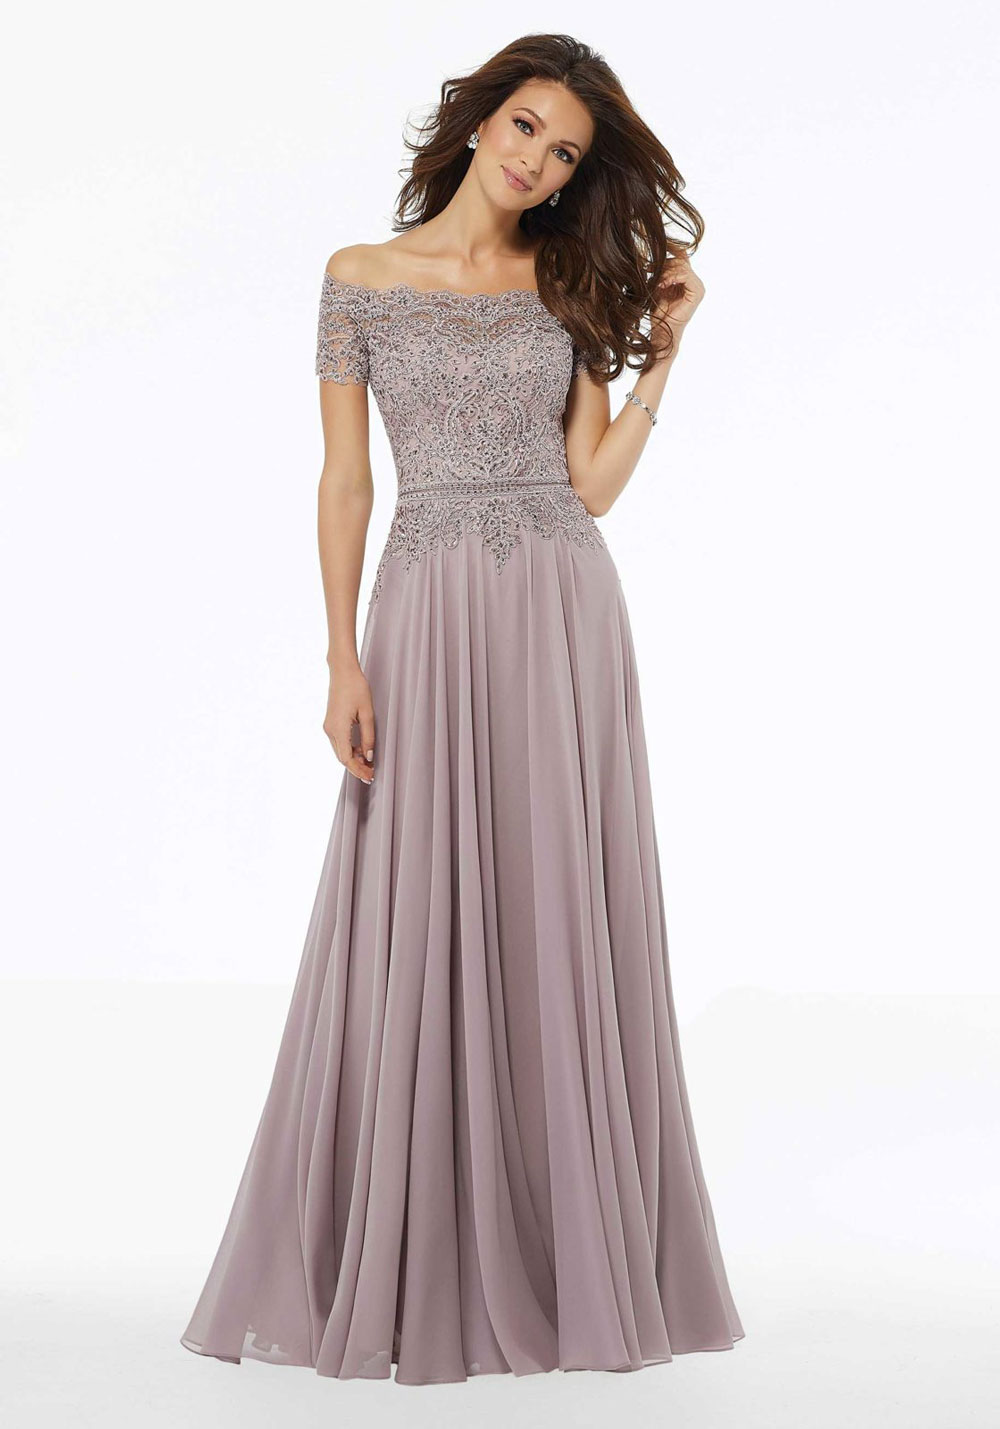 A-Line evening dress with beaded appliques